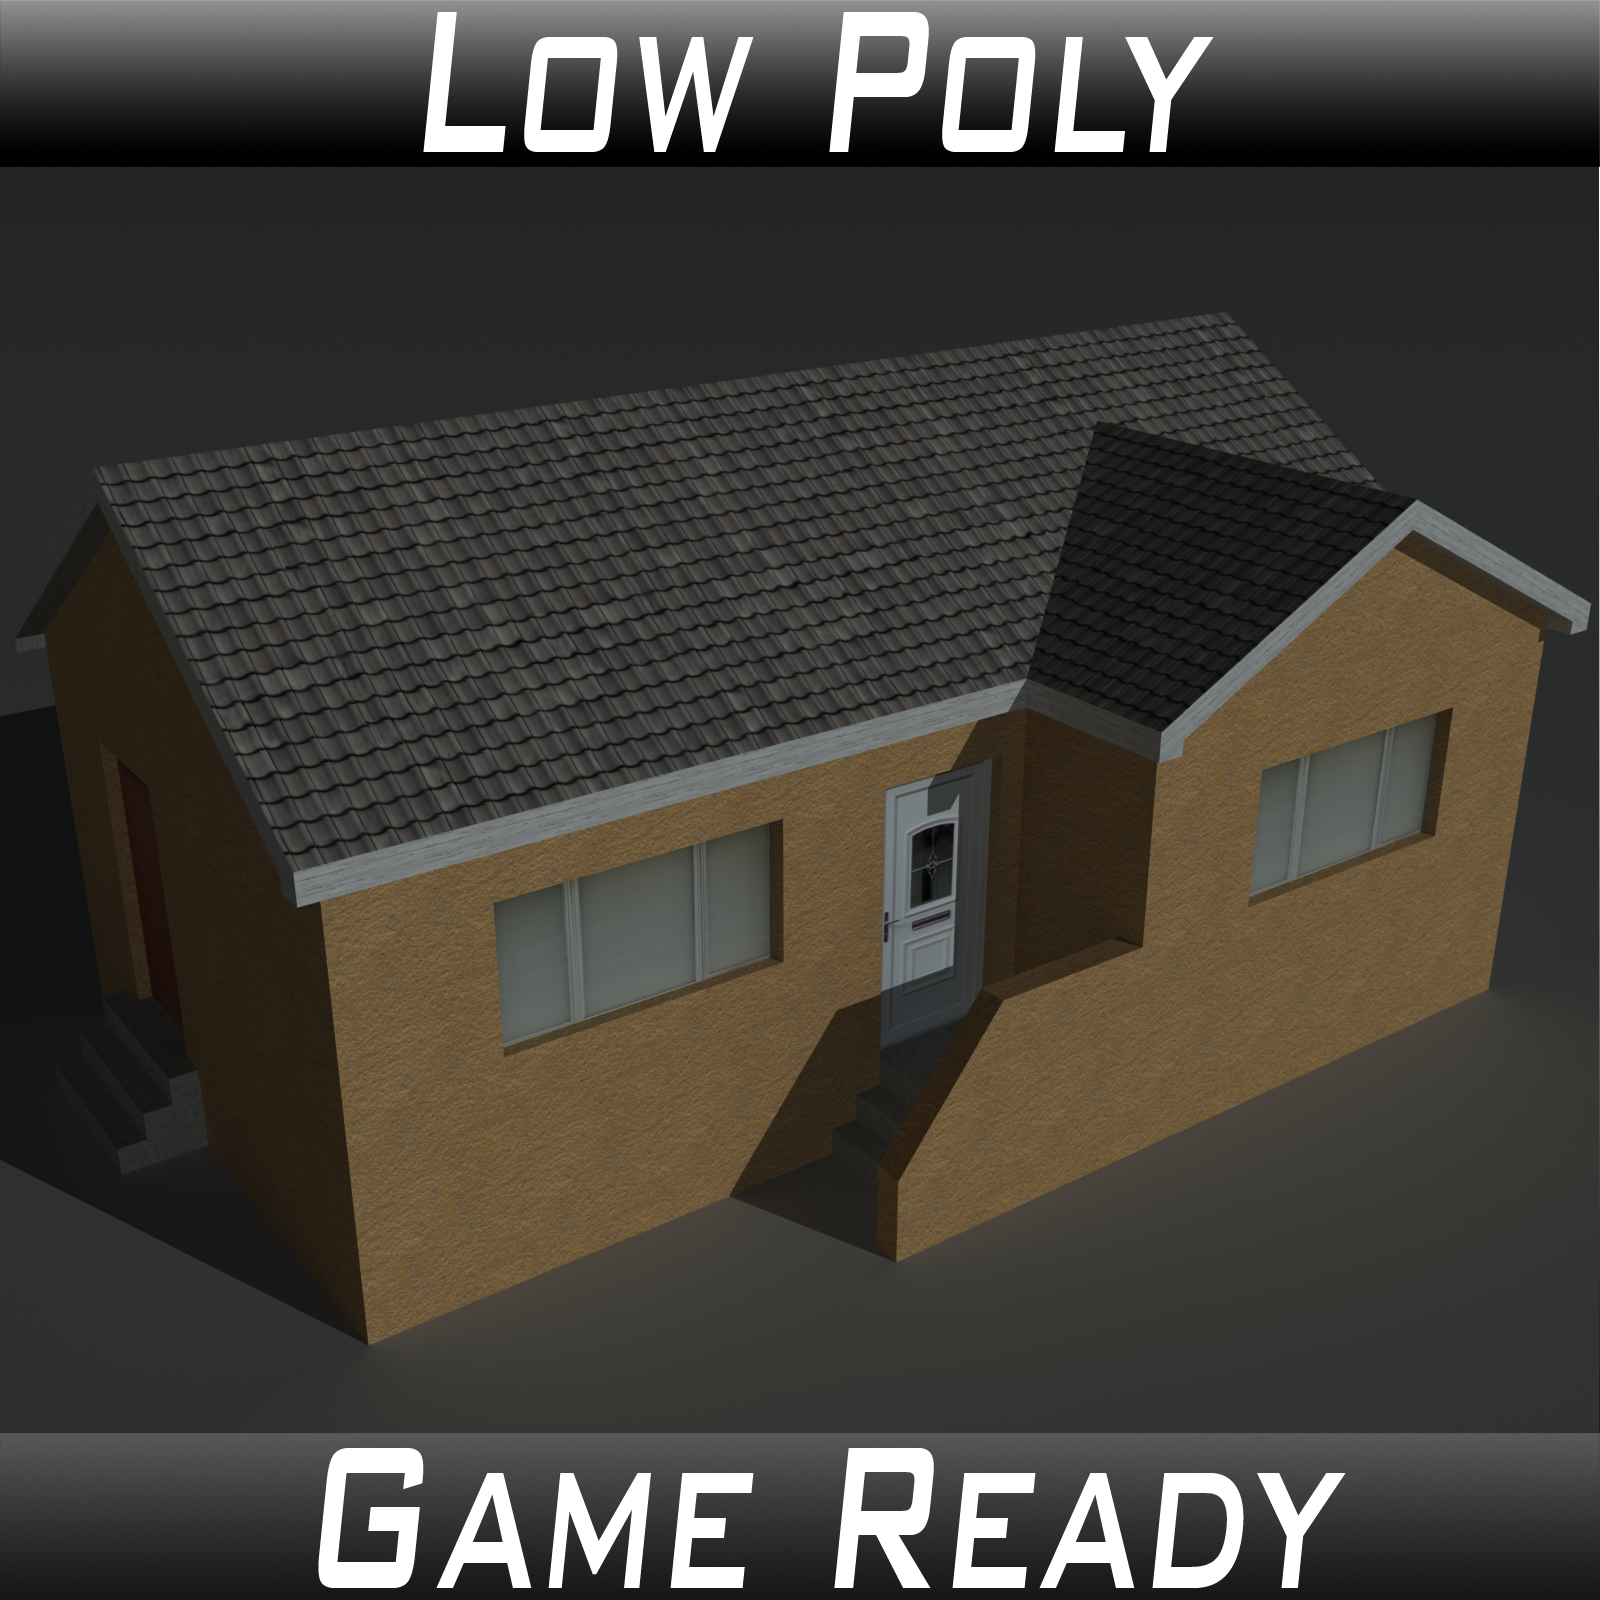 Low Poly House 13 - Extended License